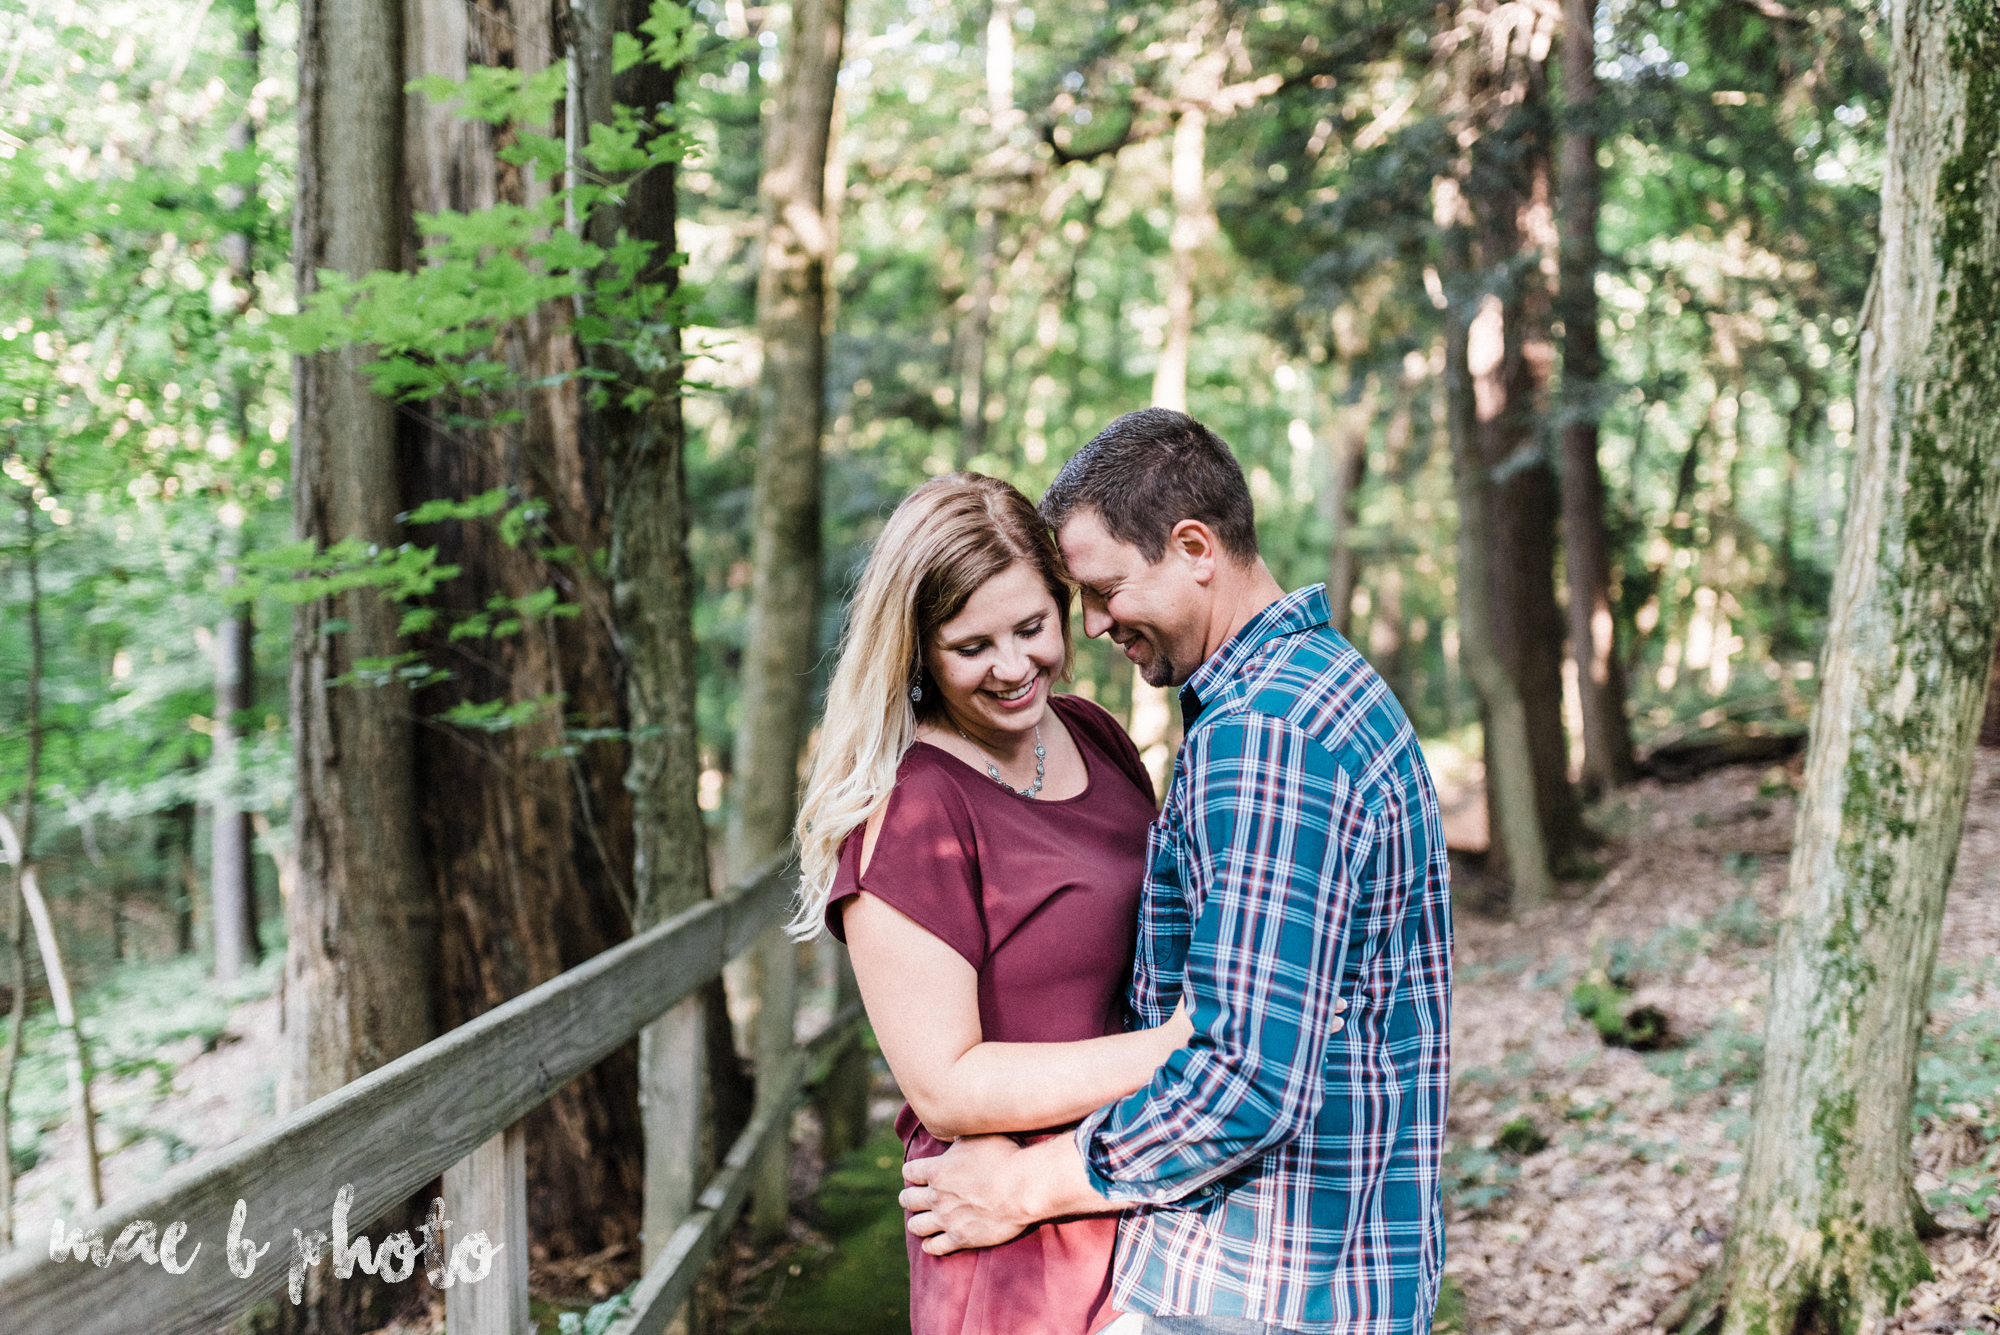 becca and rich's woodsy summer engagement session at ford nature center in mill creek park in youngstown ohio photographed by cleveland wedding photographer mae b photo-5.jpg